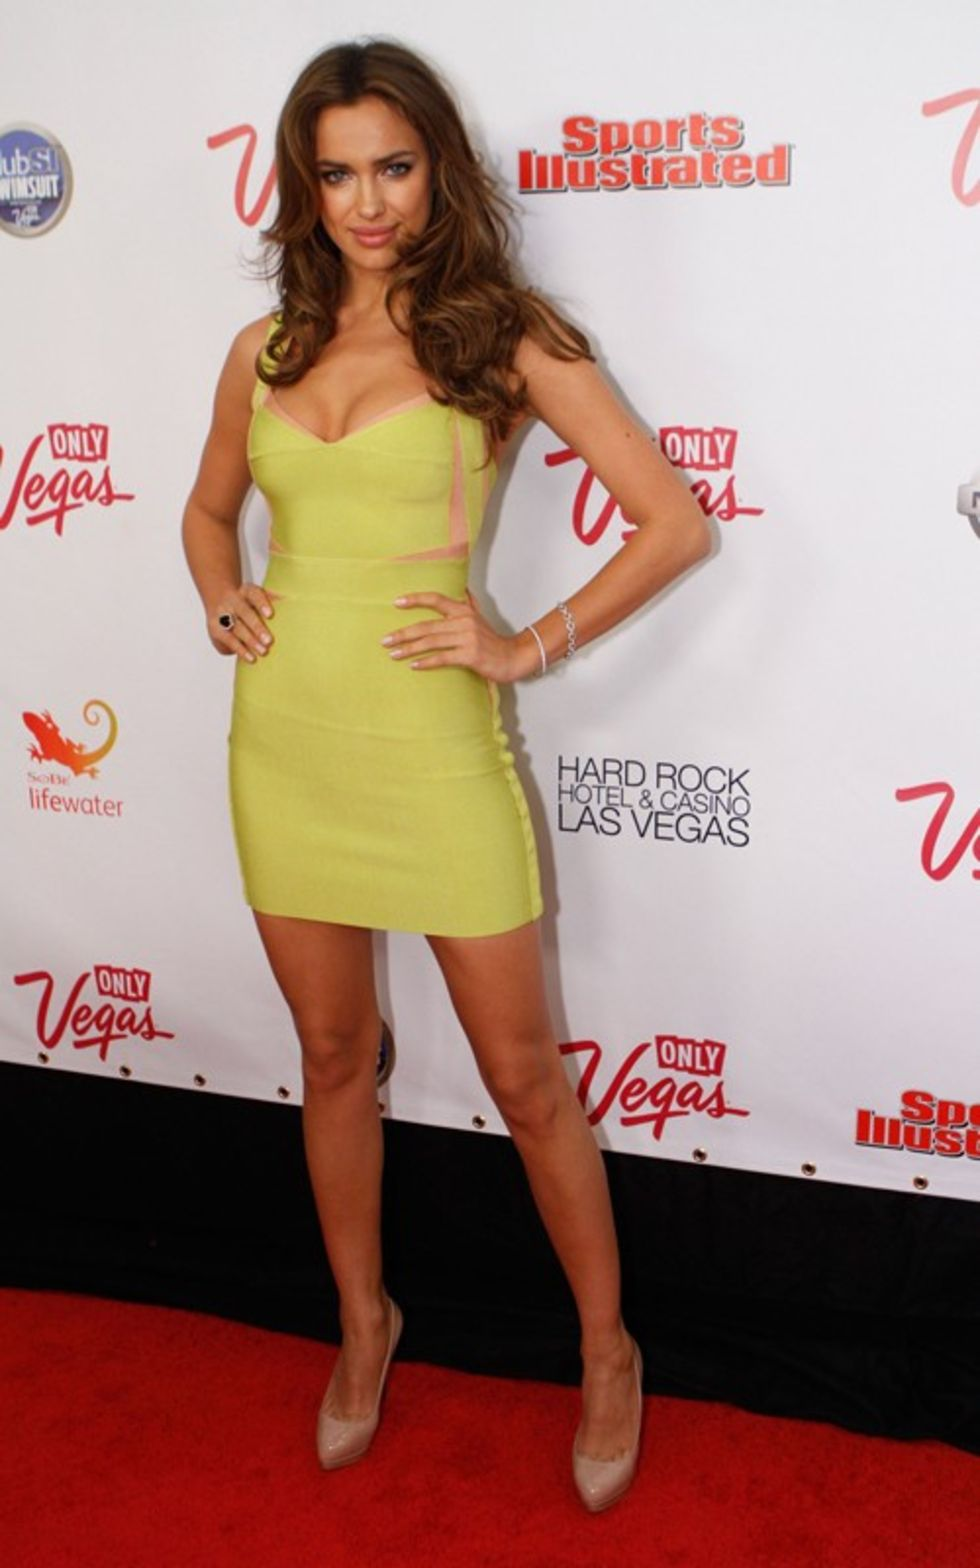 Irina Shayk 2011 : irina-shayk-at-the-club-si-swimsuit-party-in-las-vegas-13